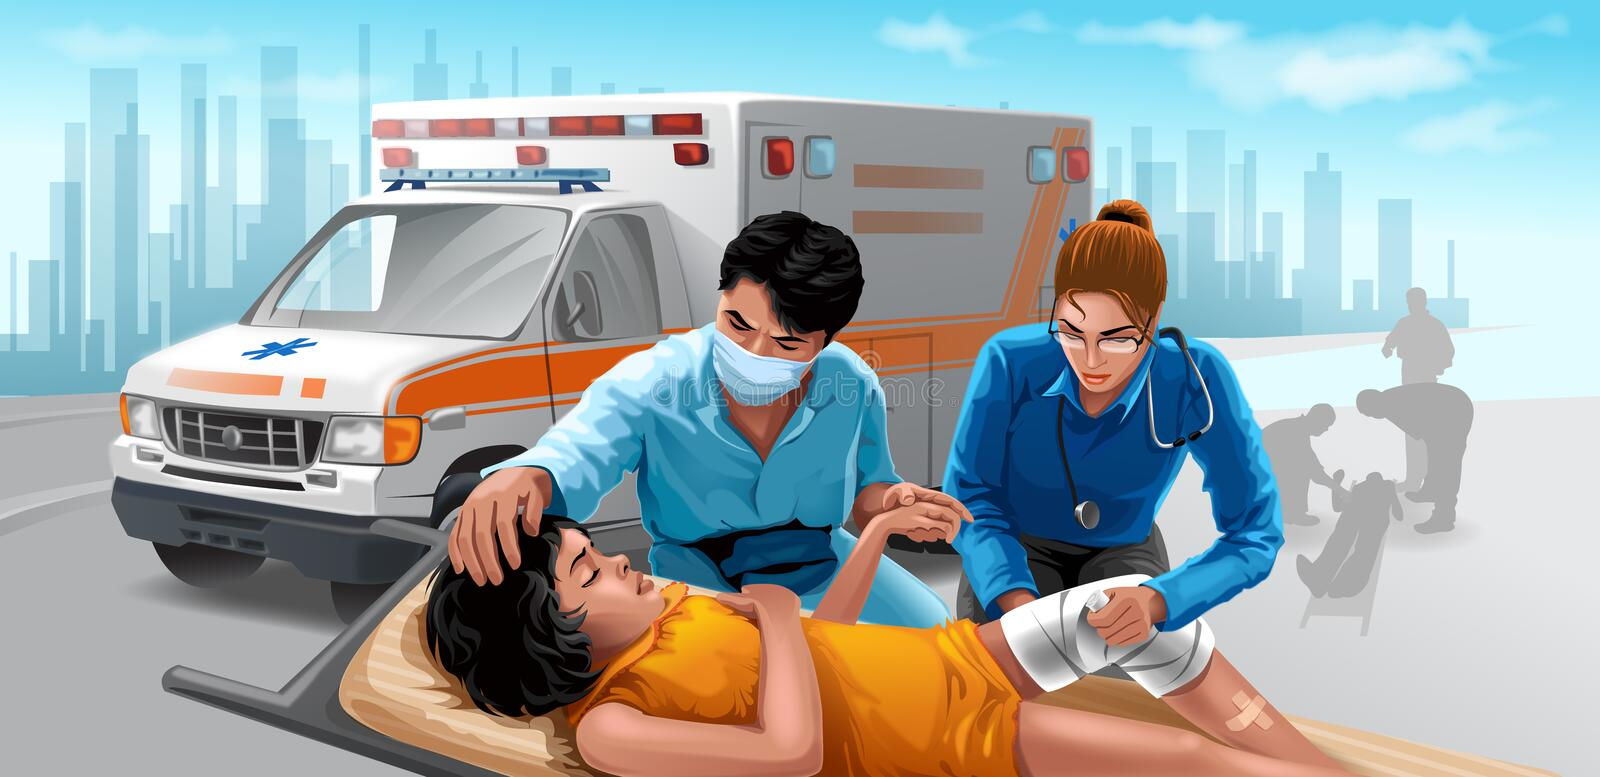 Download Emergency Medical Care stock illustration. Image of nurse - 13503580